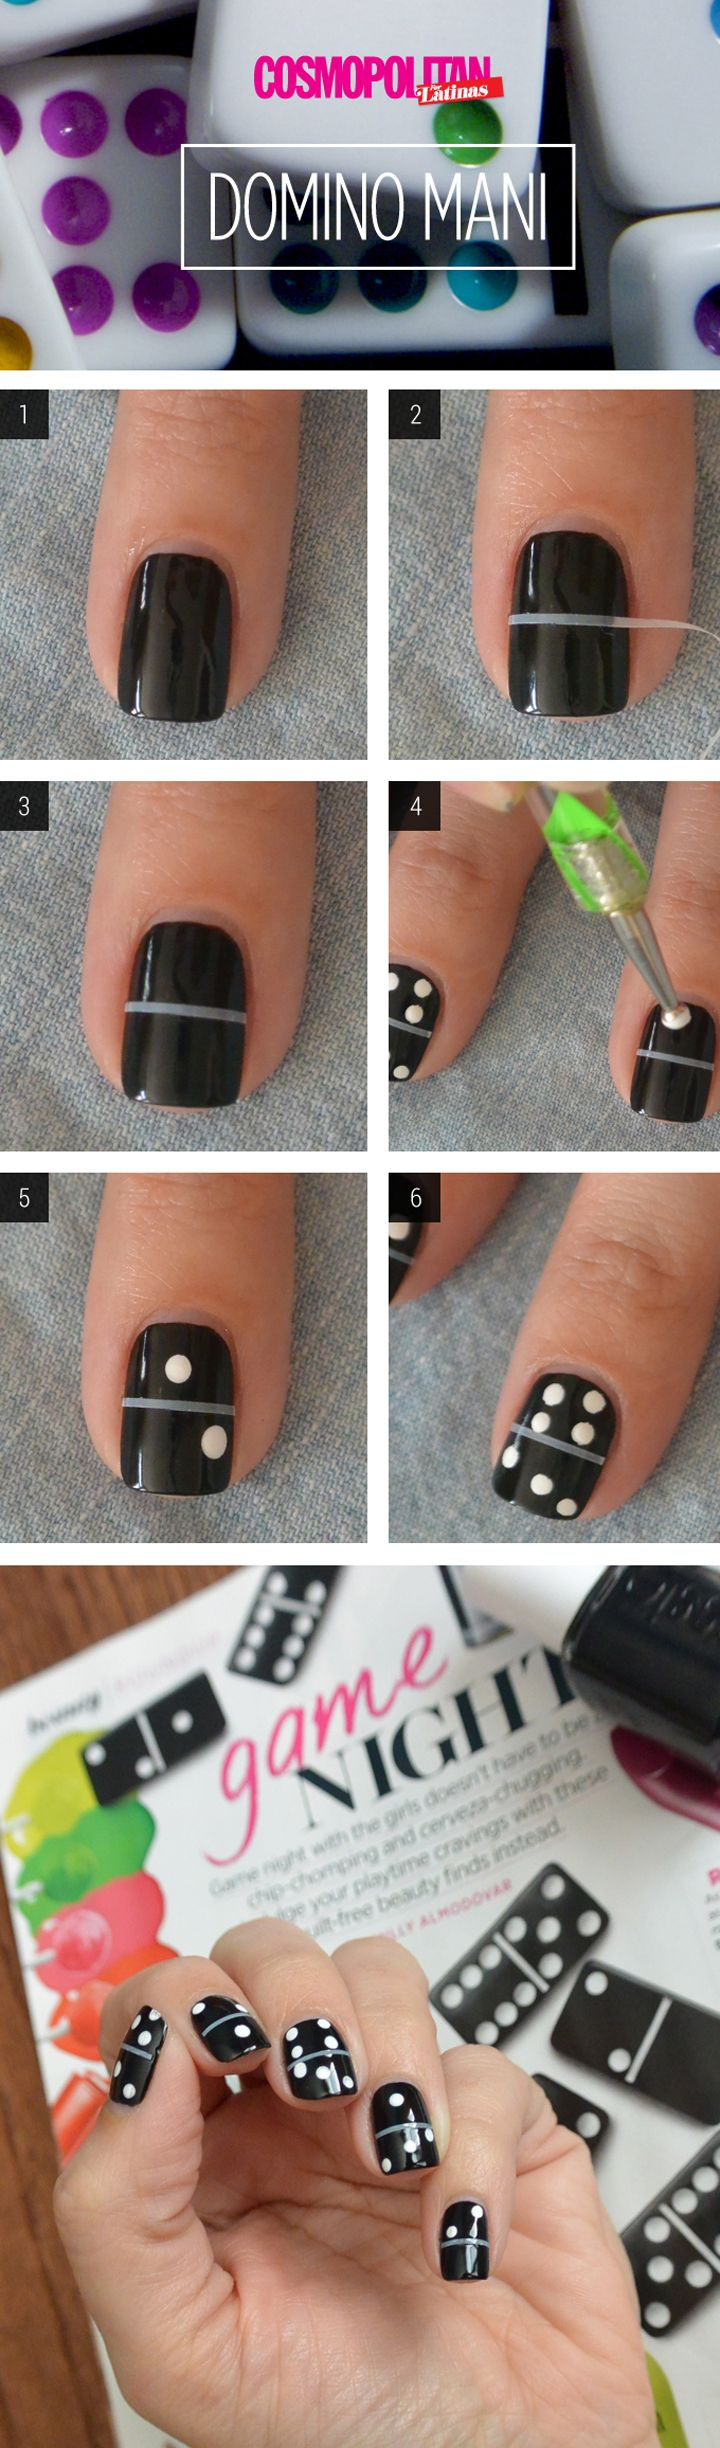 Nail Art How-To: Fun Domino Manicure by @NailsbyArelisP Instead of leaving tape on put white on underneath then tape, then paint black